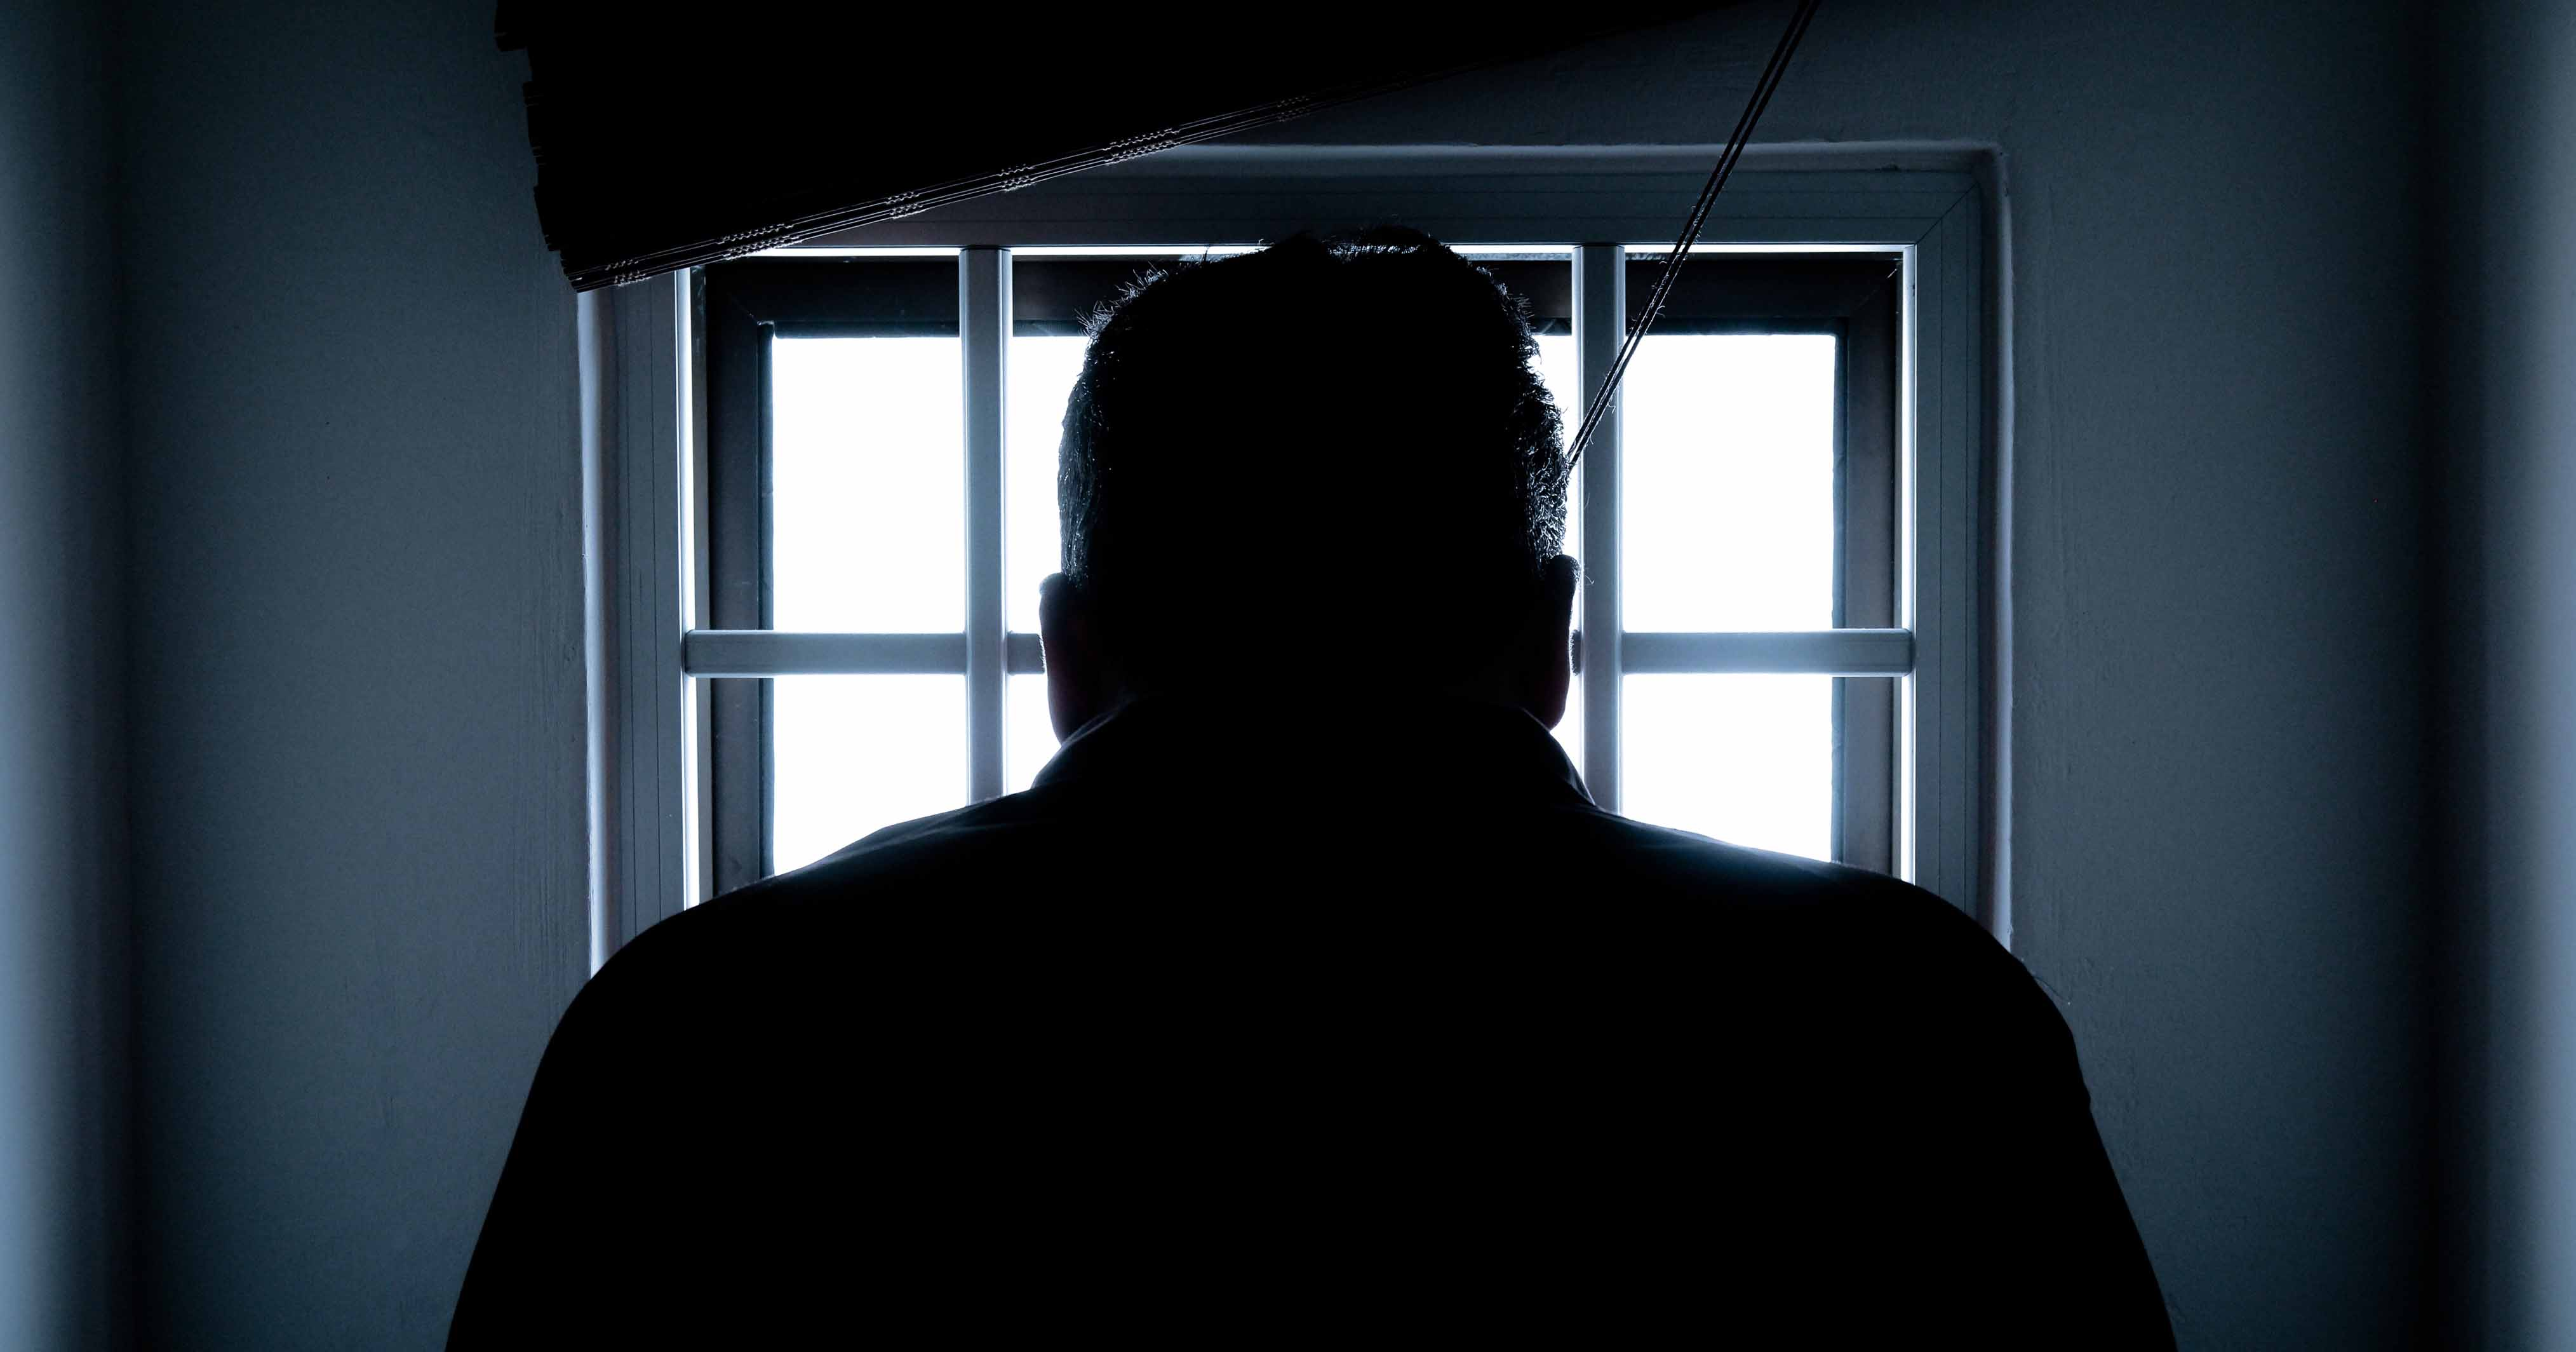 Man silhouetted against a window.